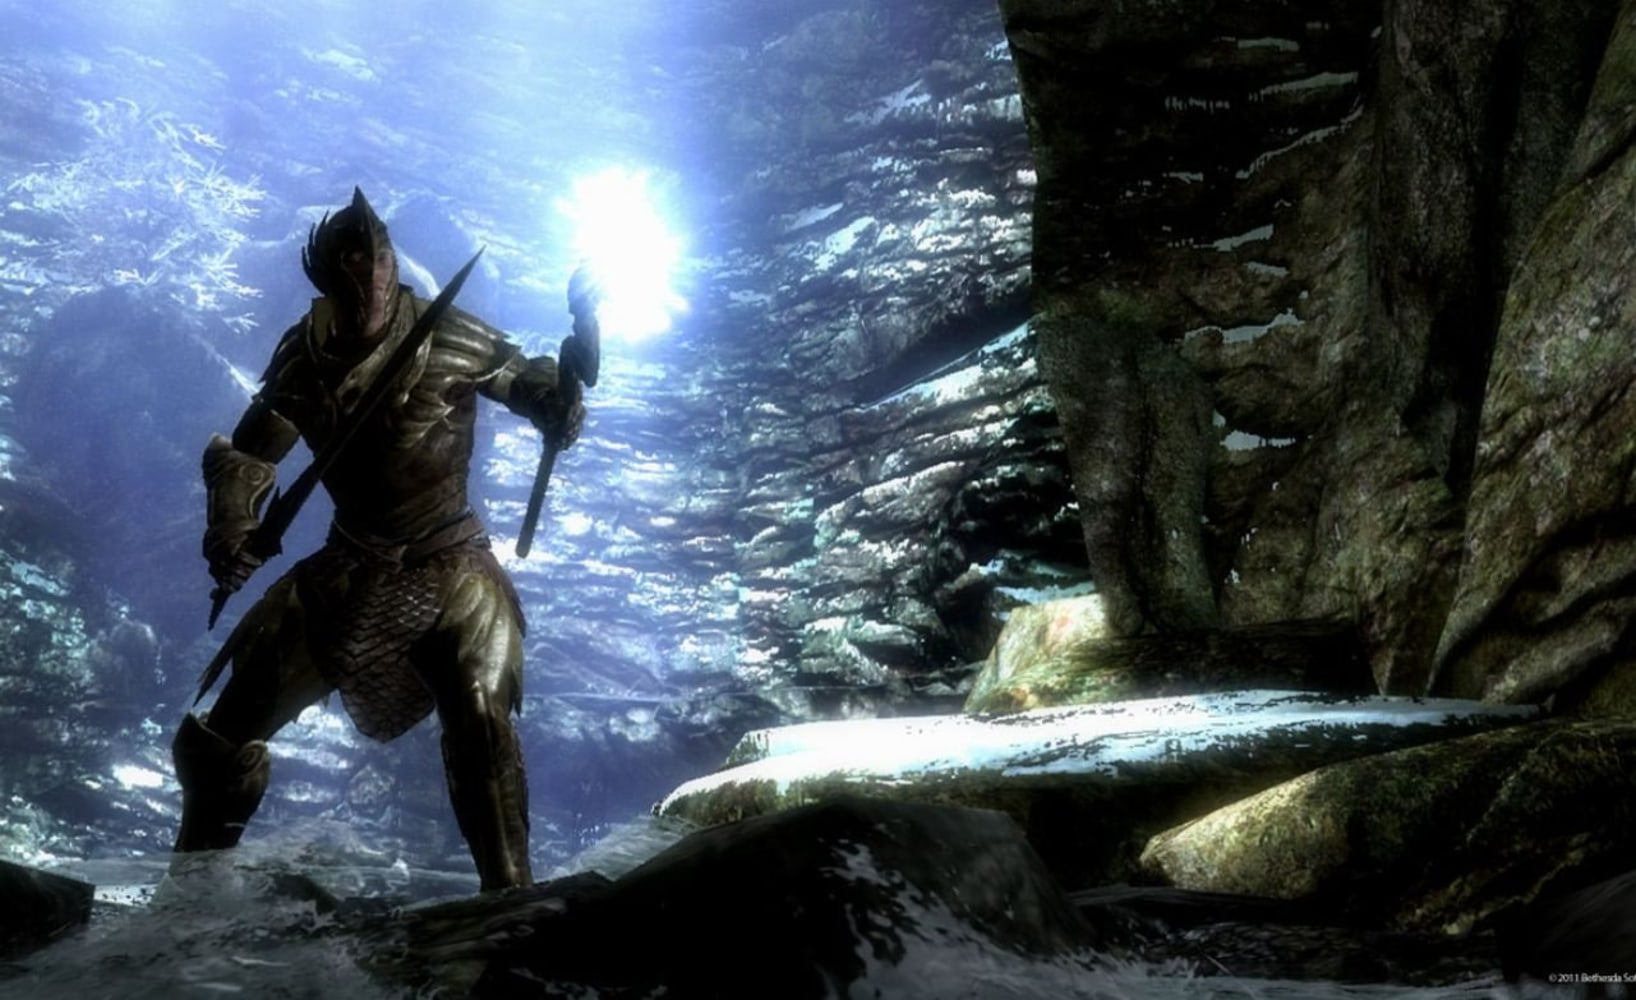 Five tips for getting the most out of 'Skyrim' - NBC News